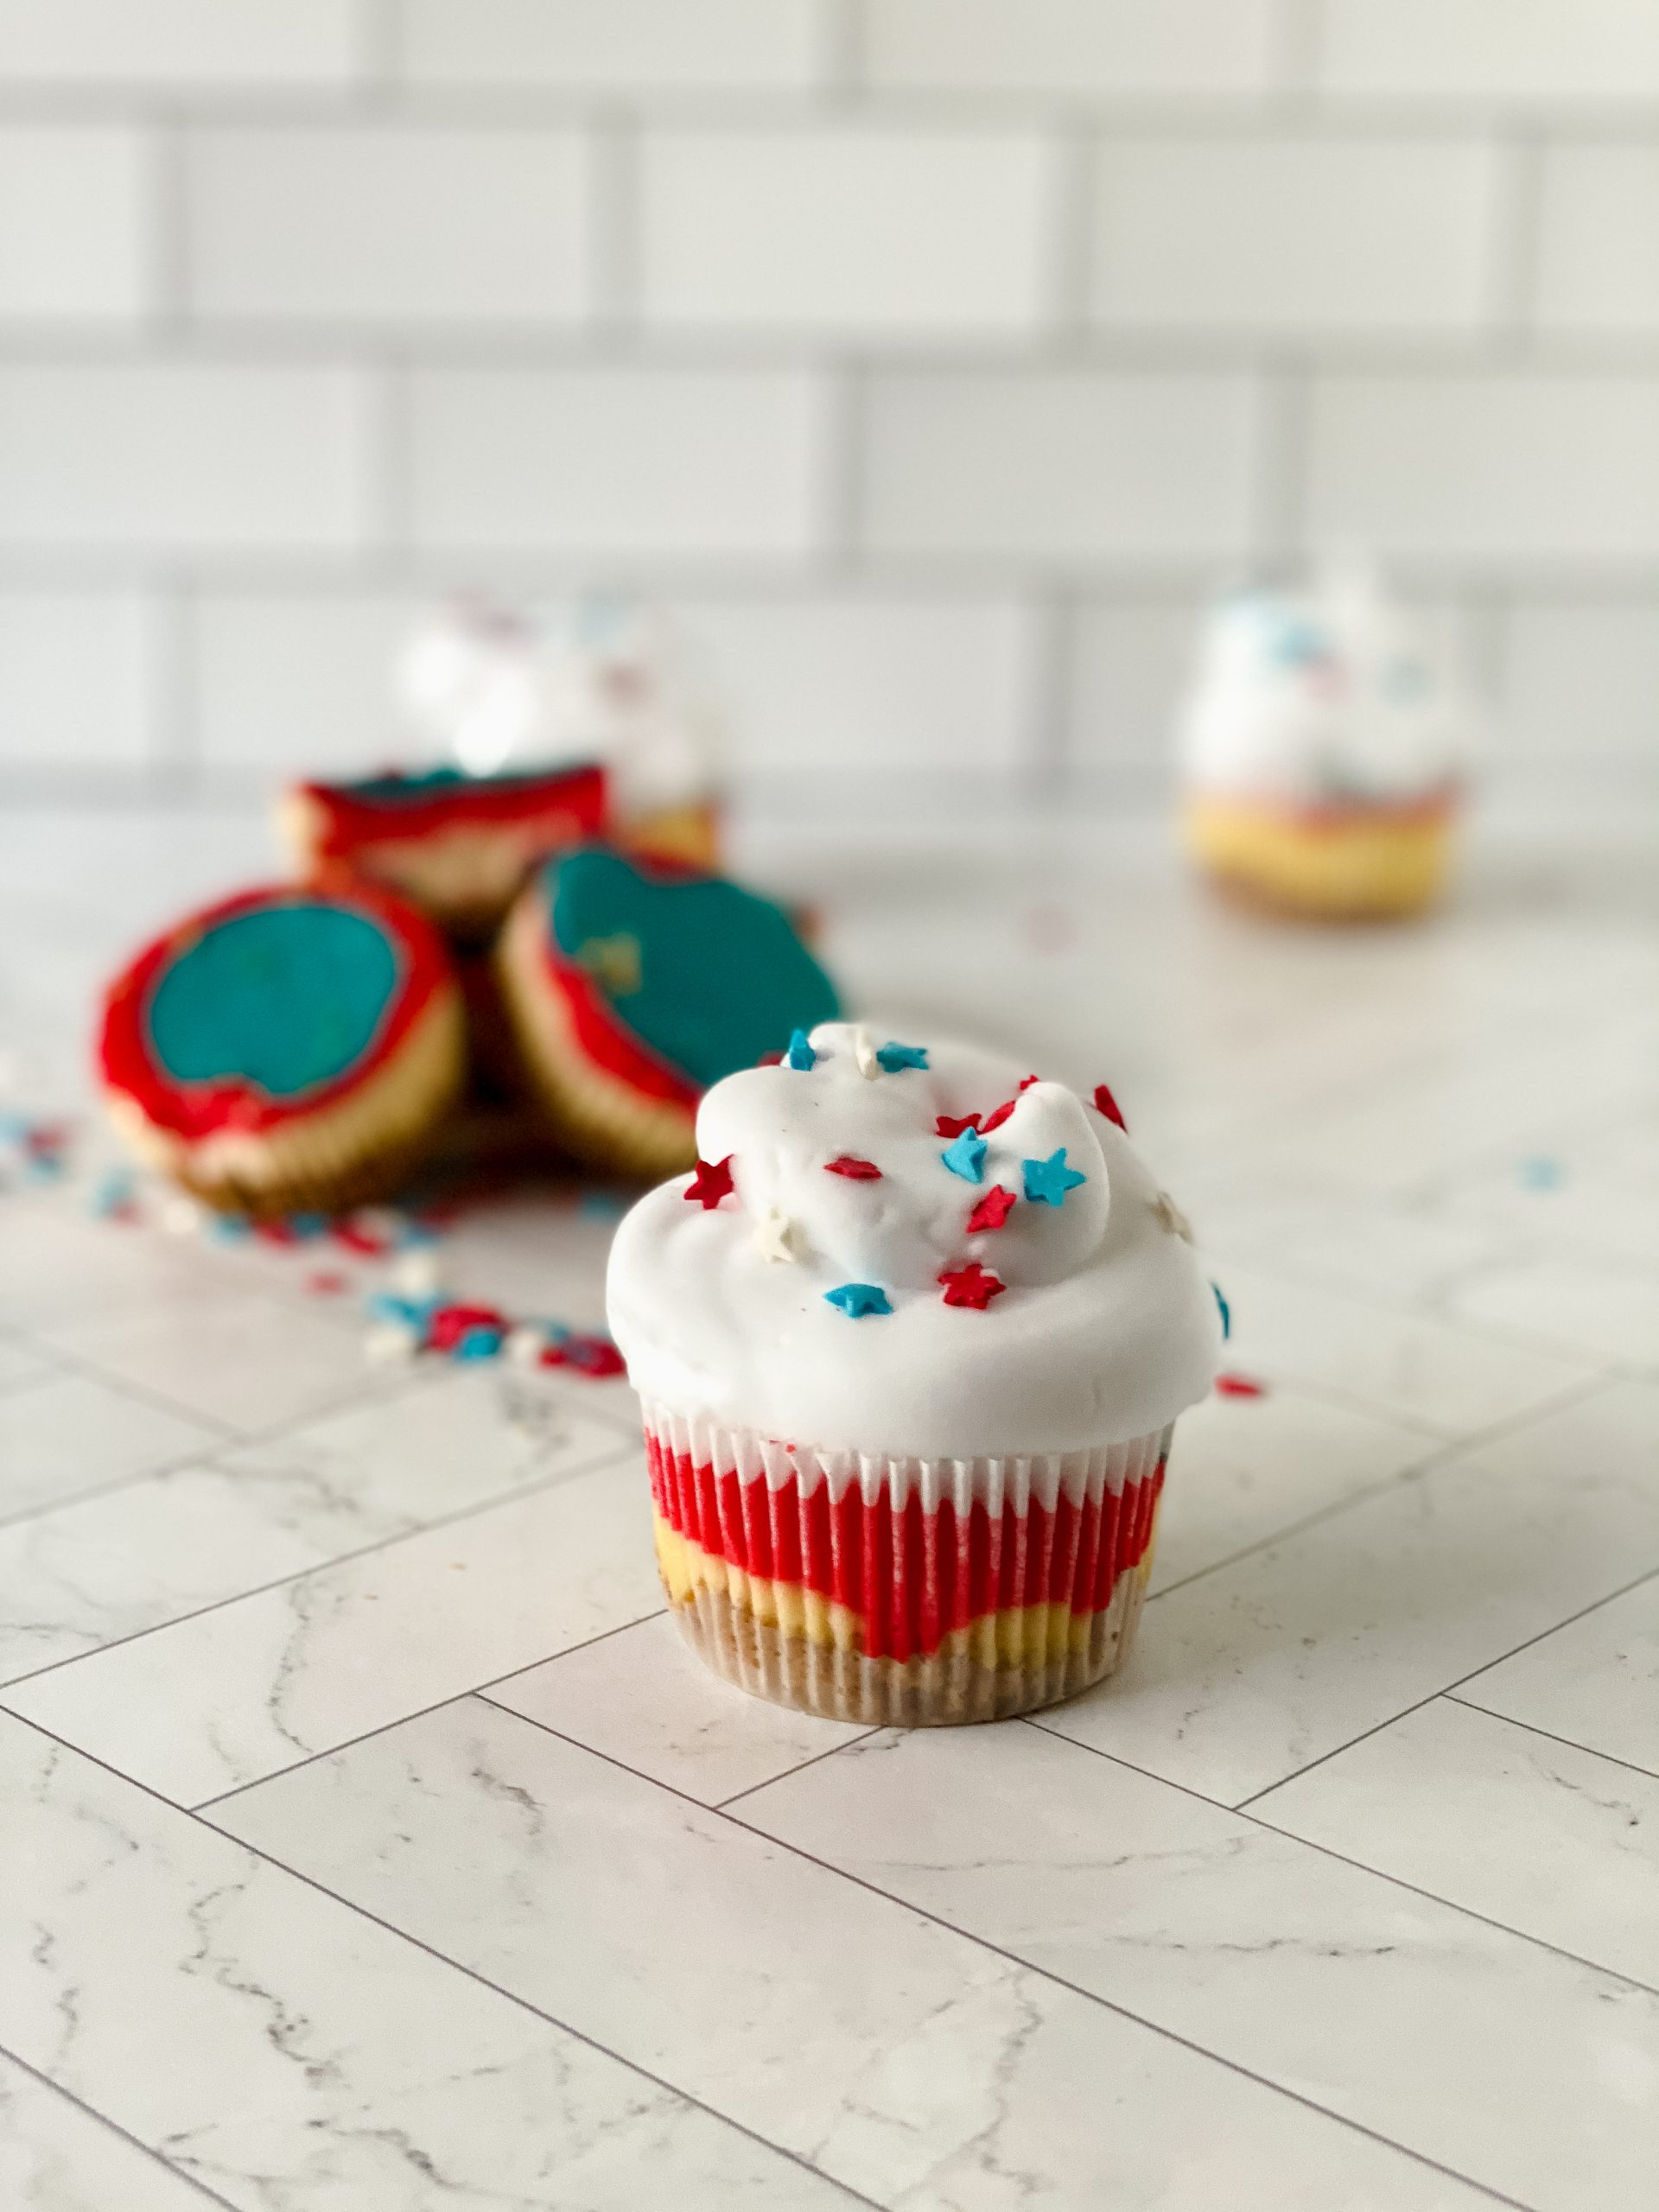 a dessert cupcake with stars toppings